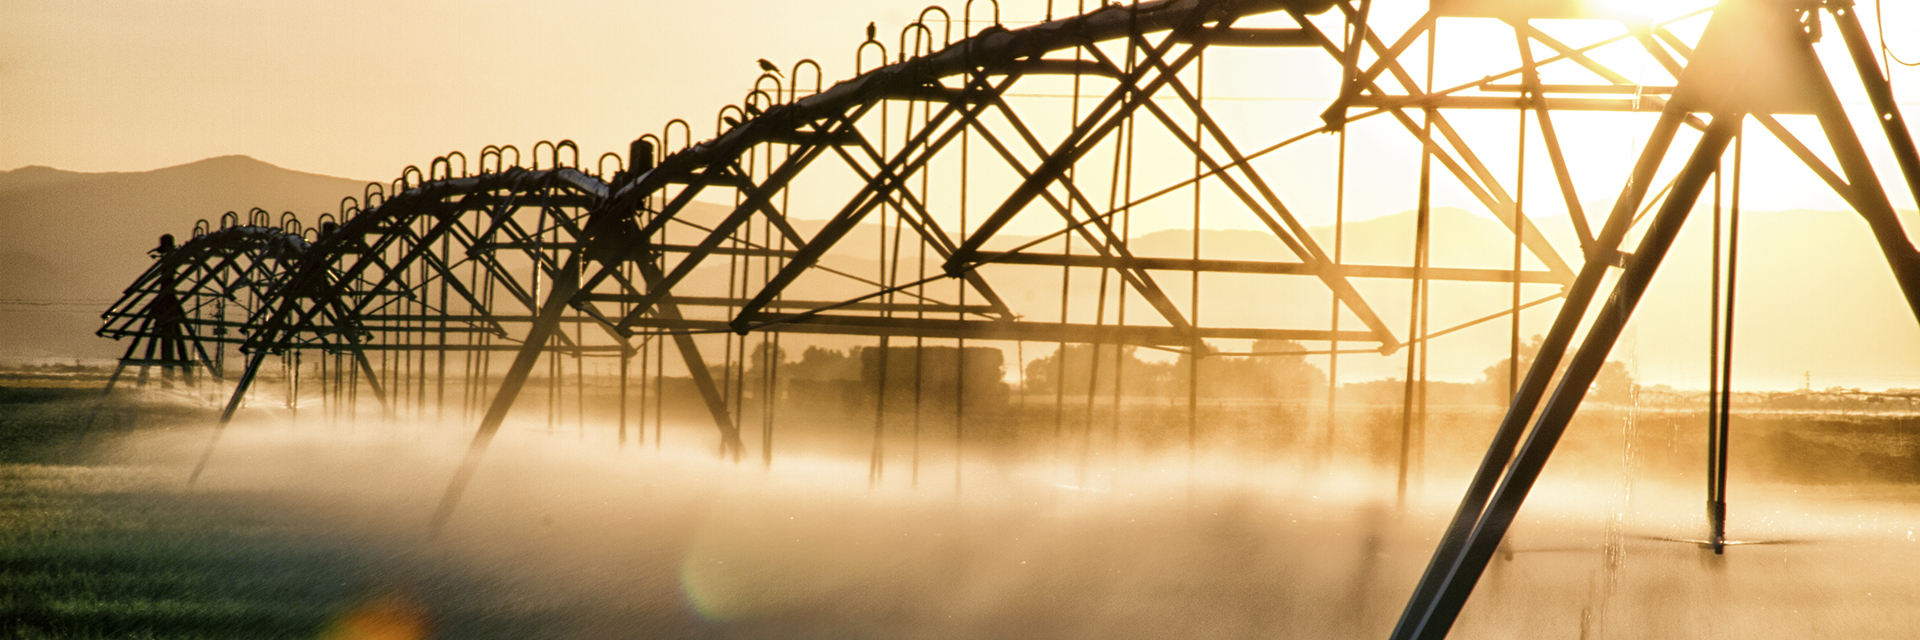 Sunset, contrasty view of a commercial irrigation system.